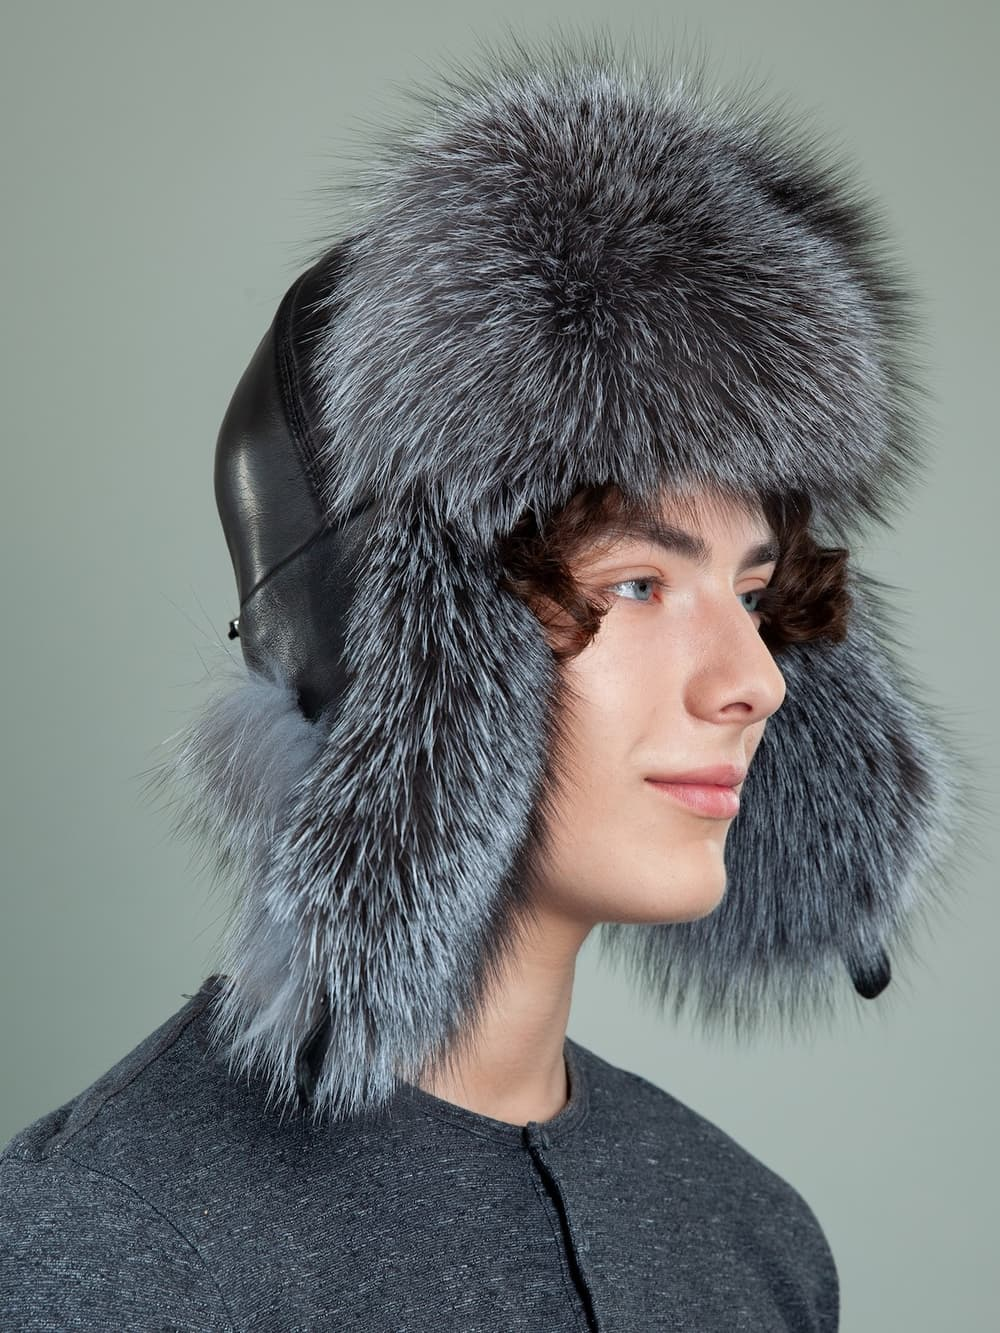 black leather and silver fox fur ushanka hat with ears for men & women